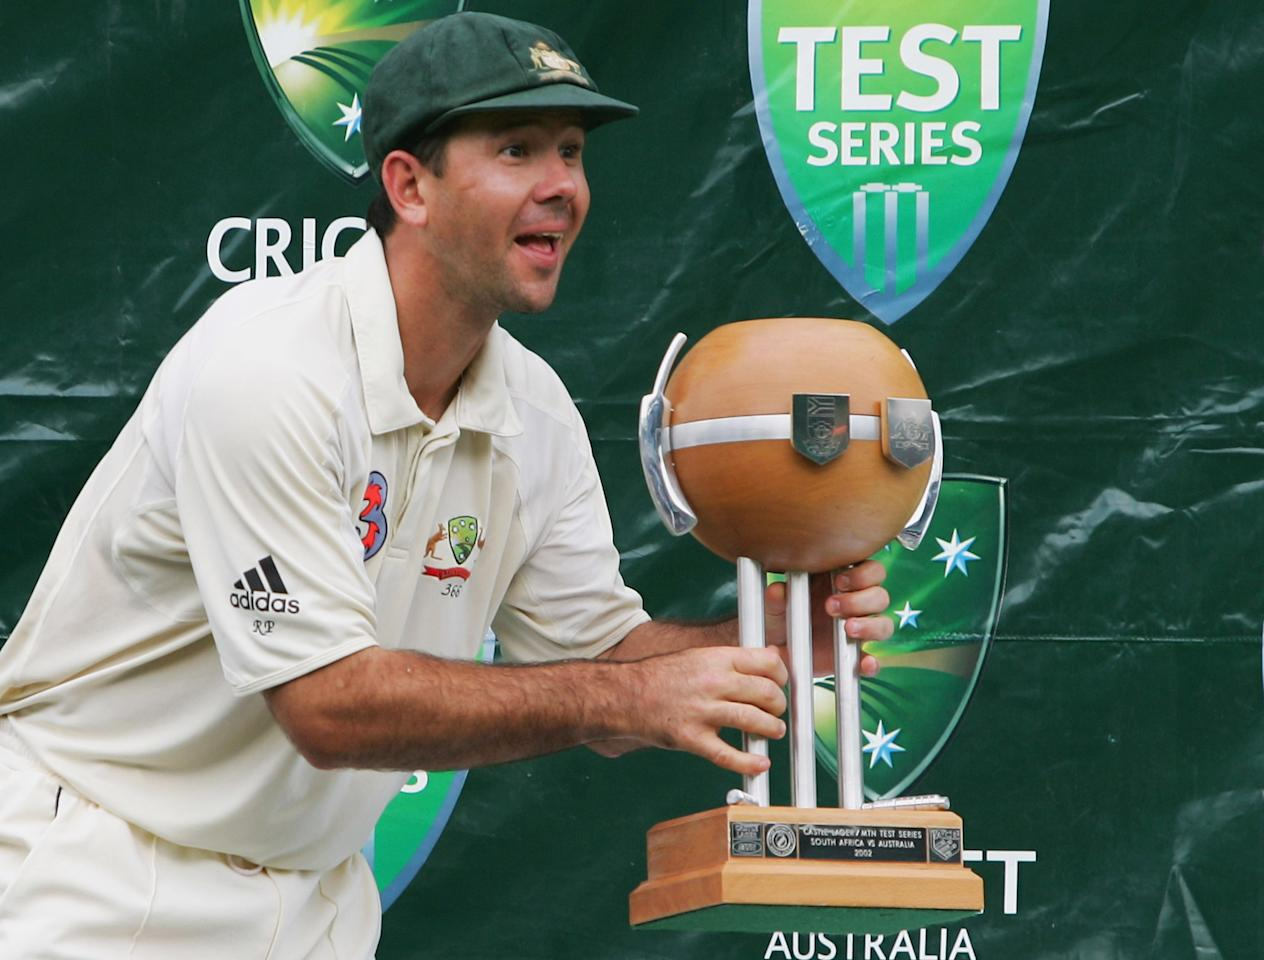 SYDNEY, NSW - JANUARY 06: Australian Captain Ricky Ponting shows off the trophy to his team mates after defeating South Africa during day five of the Third Test between Australia and South Africa played at the SCG on January 6, 2006 in Sydney, Australia.  (Photo by Chris McGrath/Getty Images)